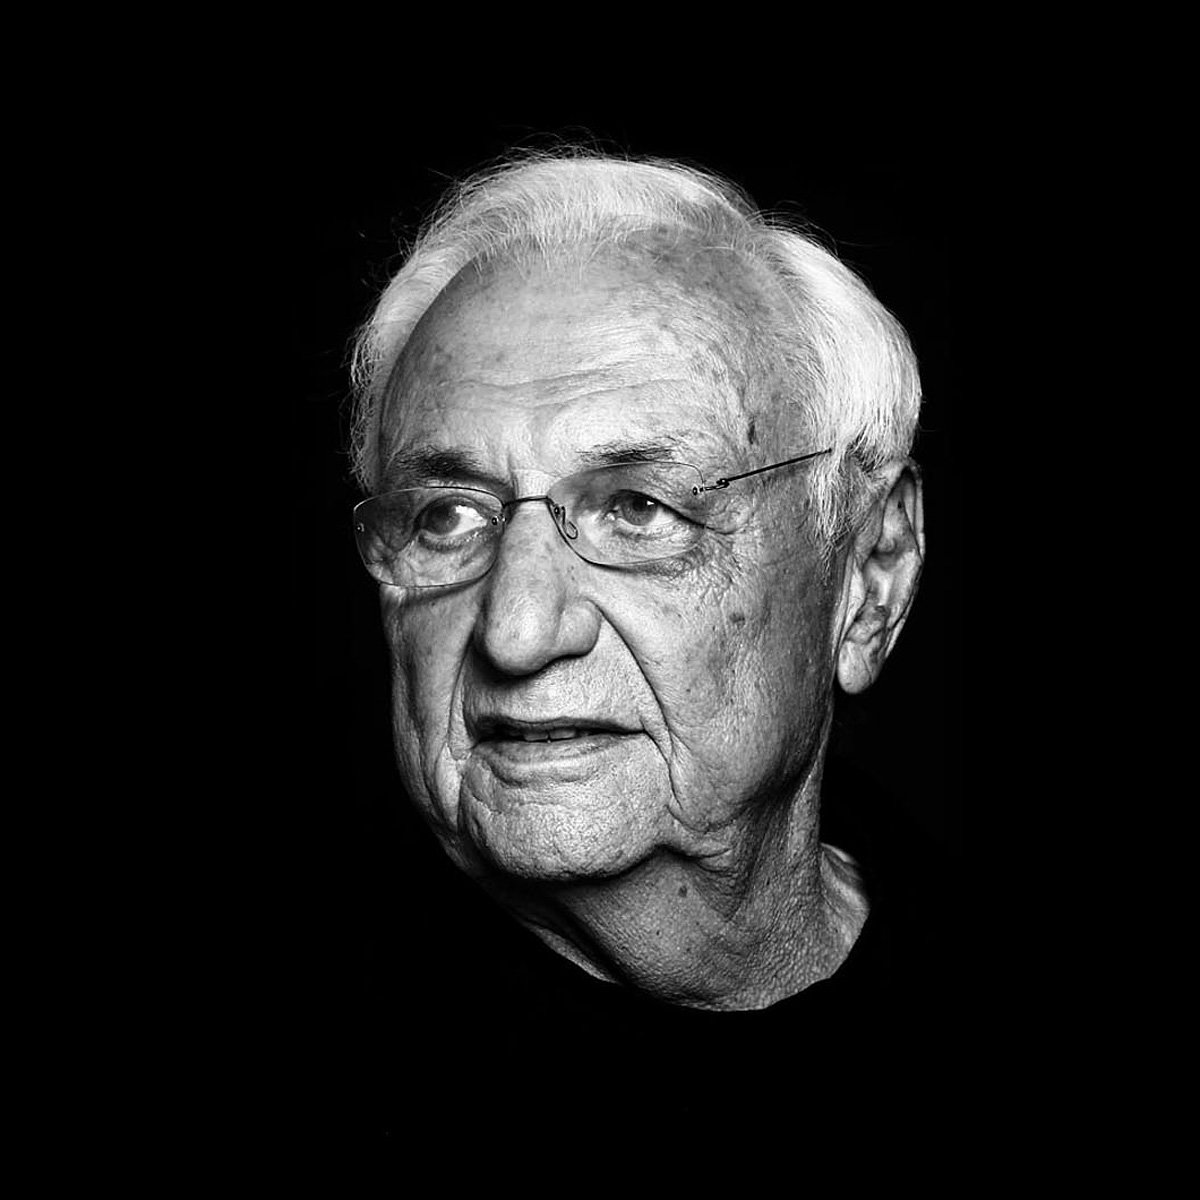 The Museum of California Design to Present Frank Gehry with its 2015 Henry Award